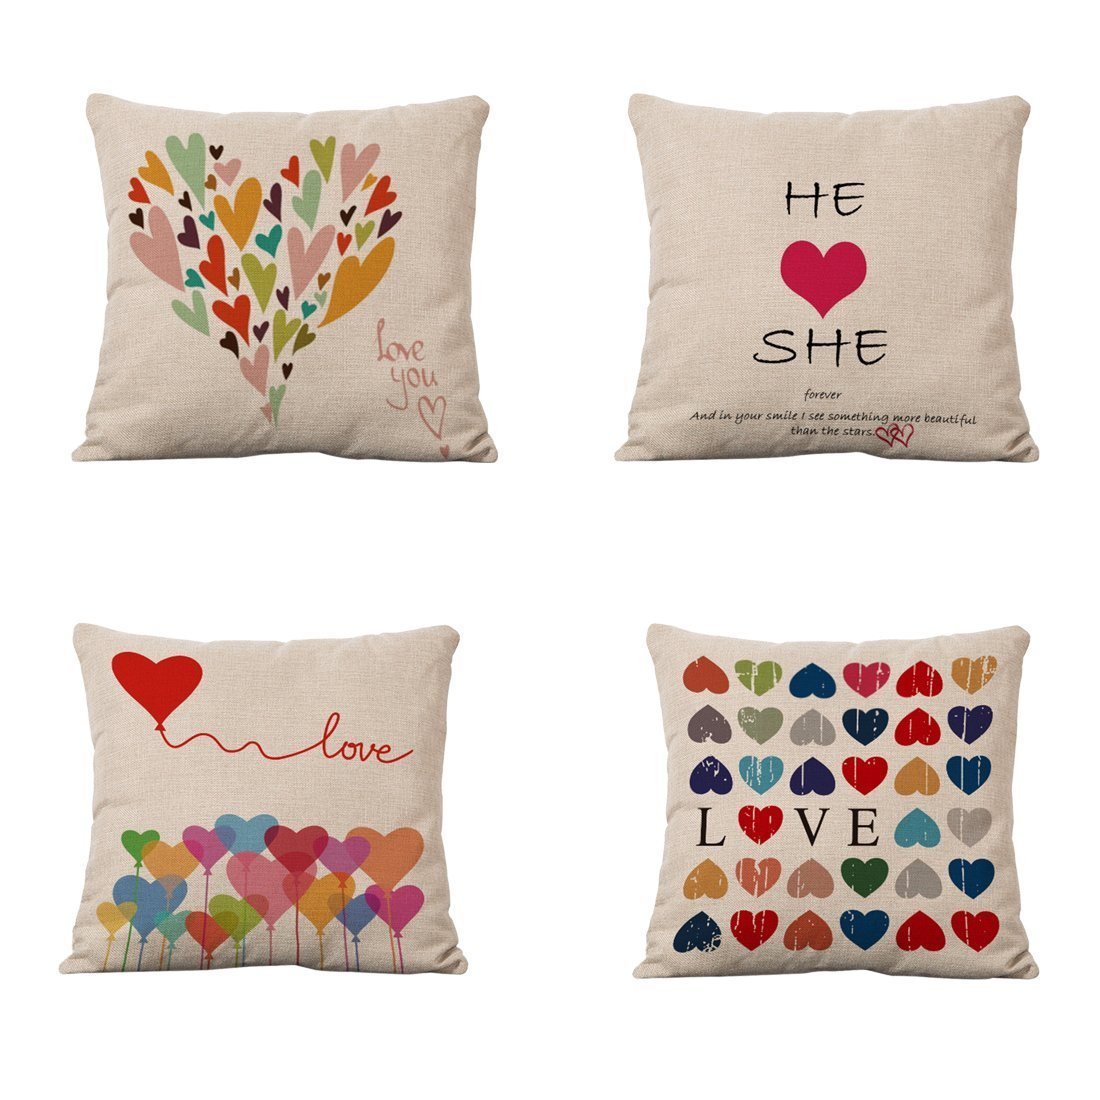 Click Here To Preview More Feng Shui Bedroom Decoration For Love and Great Relationships